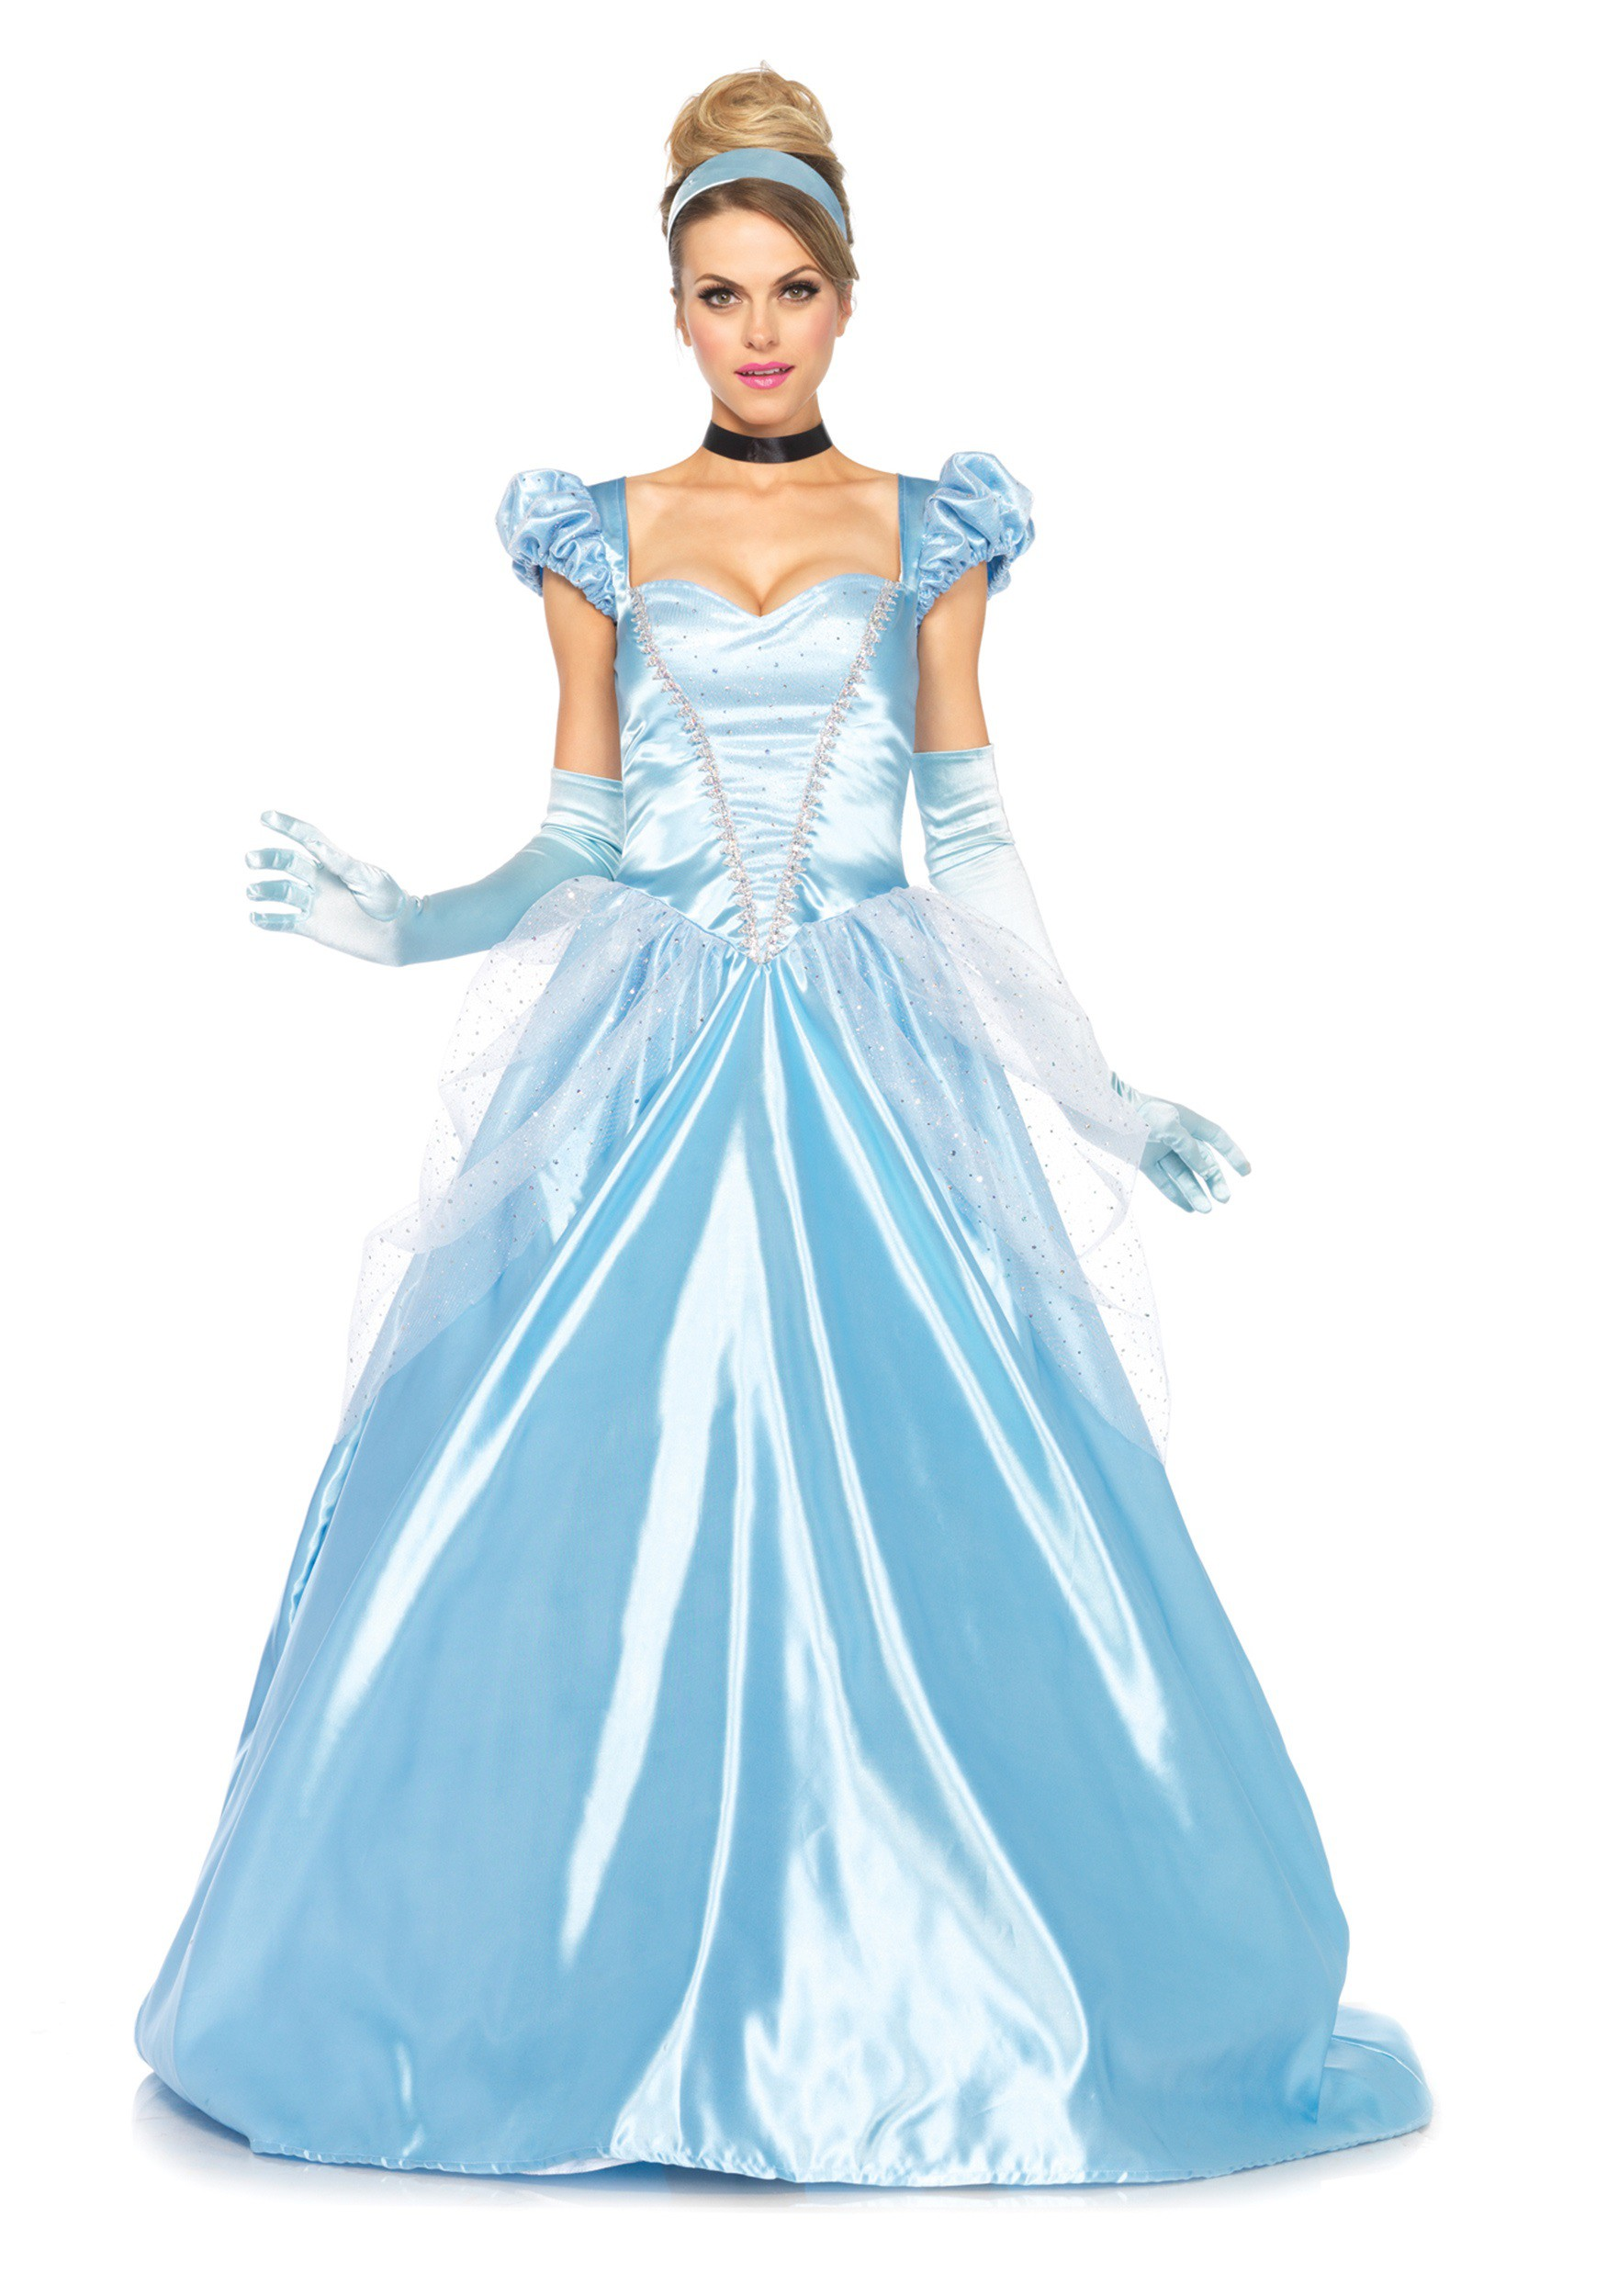 Cinderella Costume: Classic Full Length Gown for Women